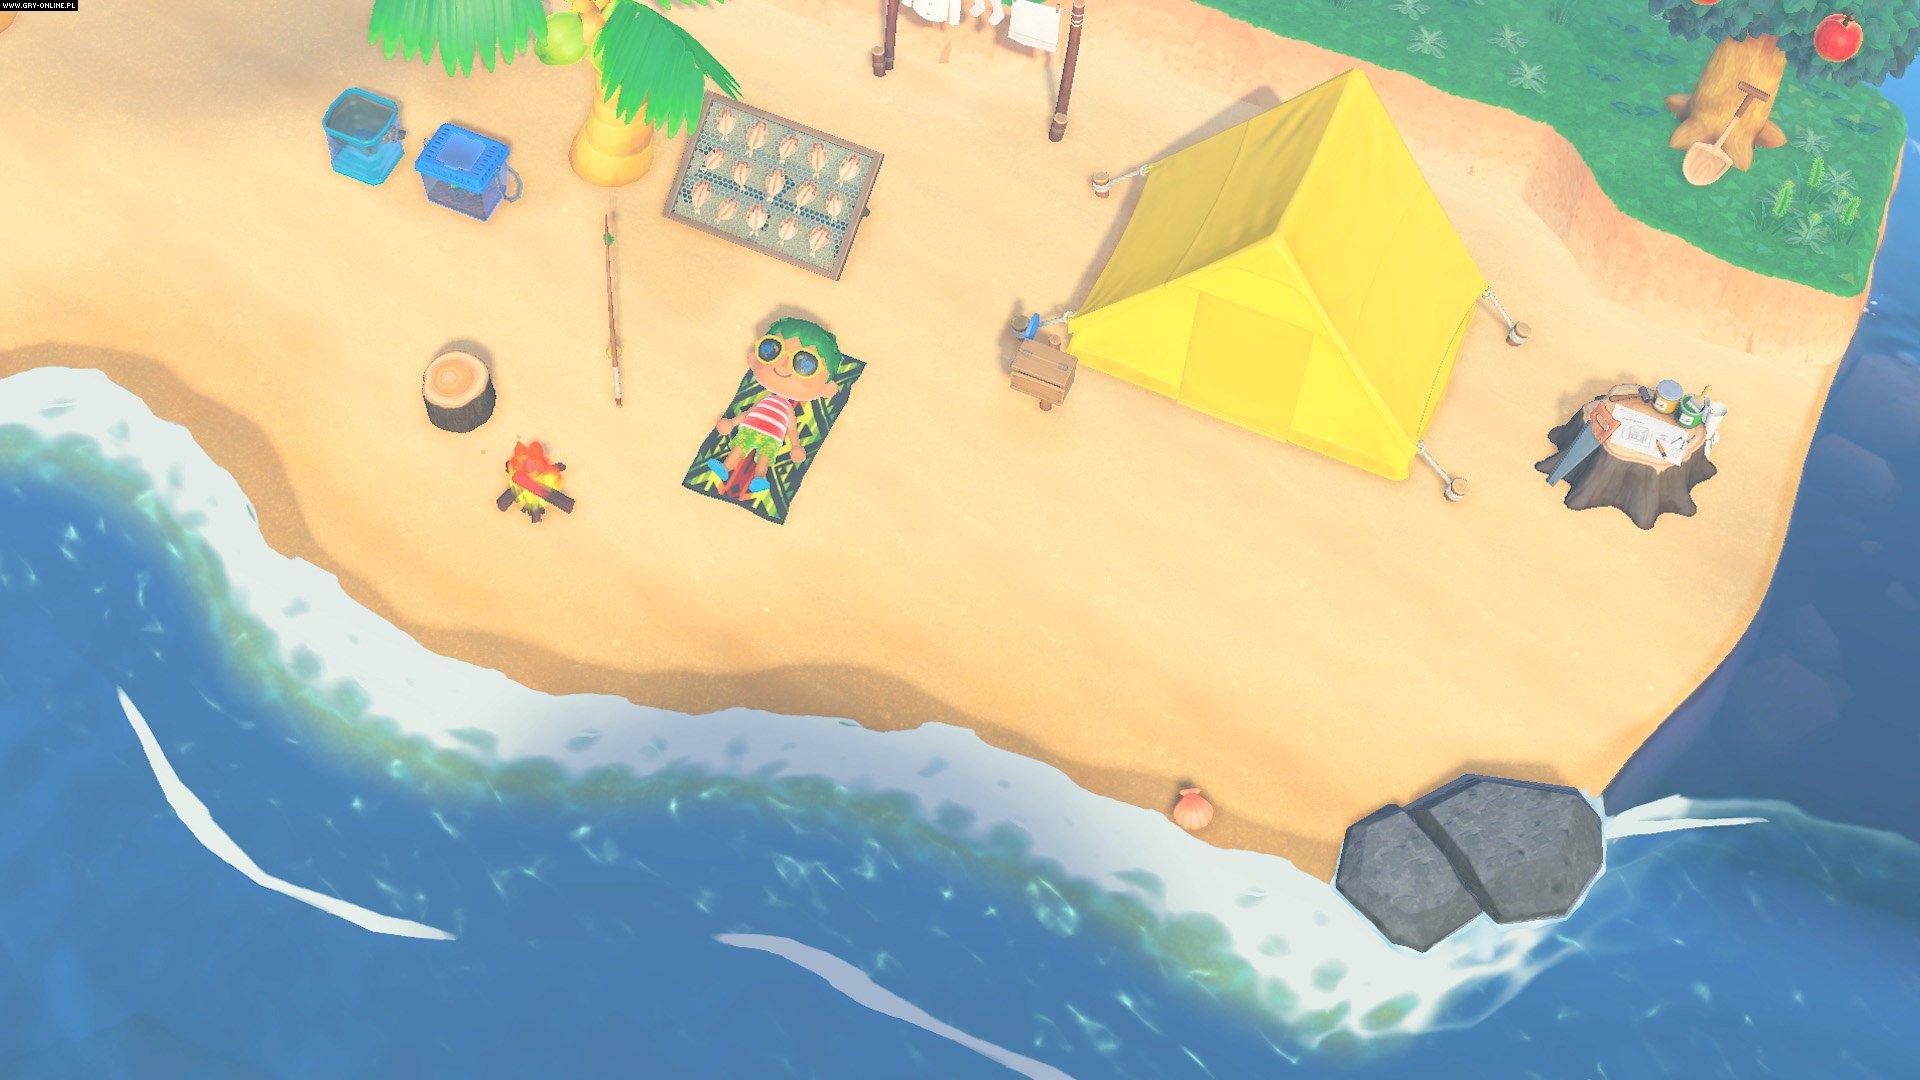 Animal Crossing: New Horizons Switch Games Image 1/76, Nintendo